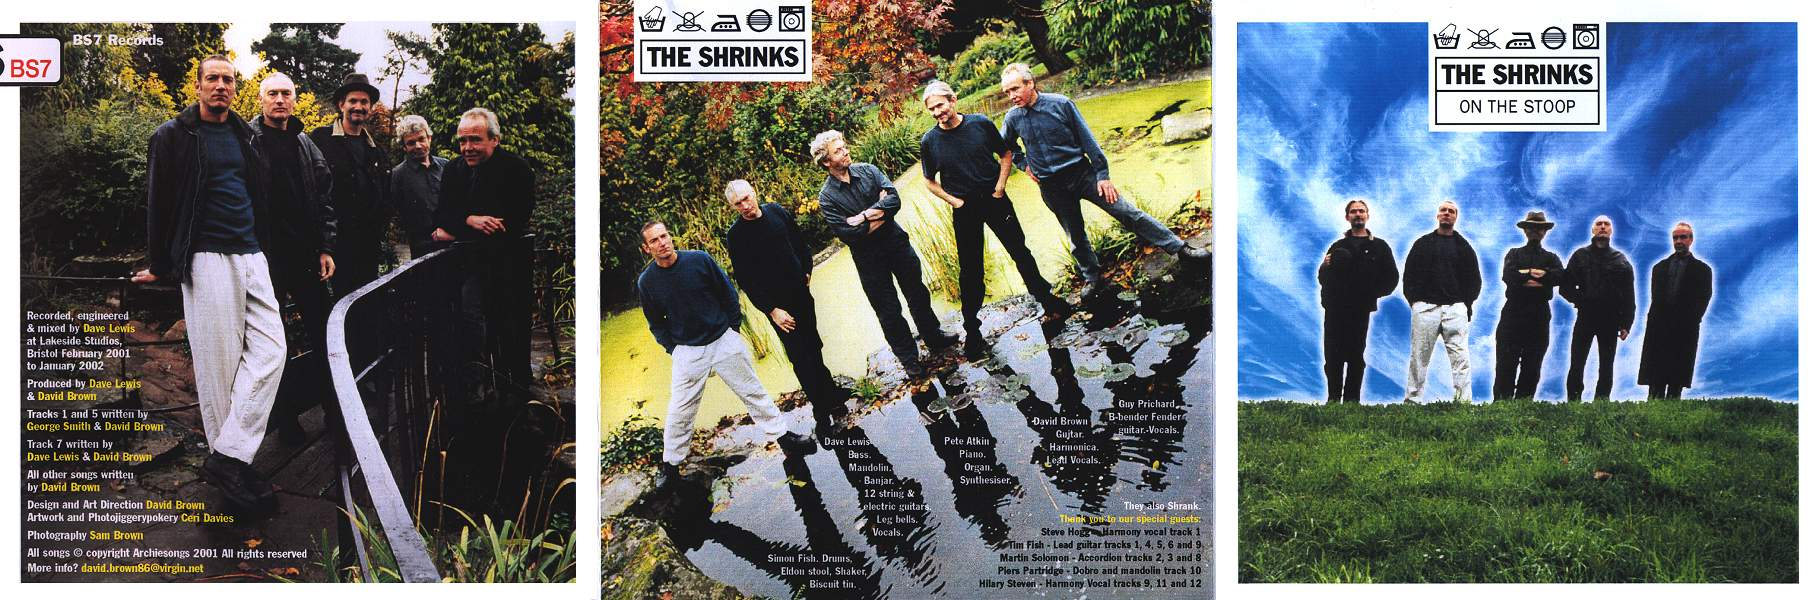 The Shrinks 'On The Stoop' CD Cover